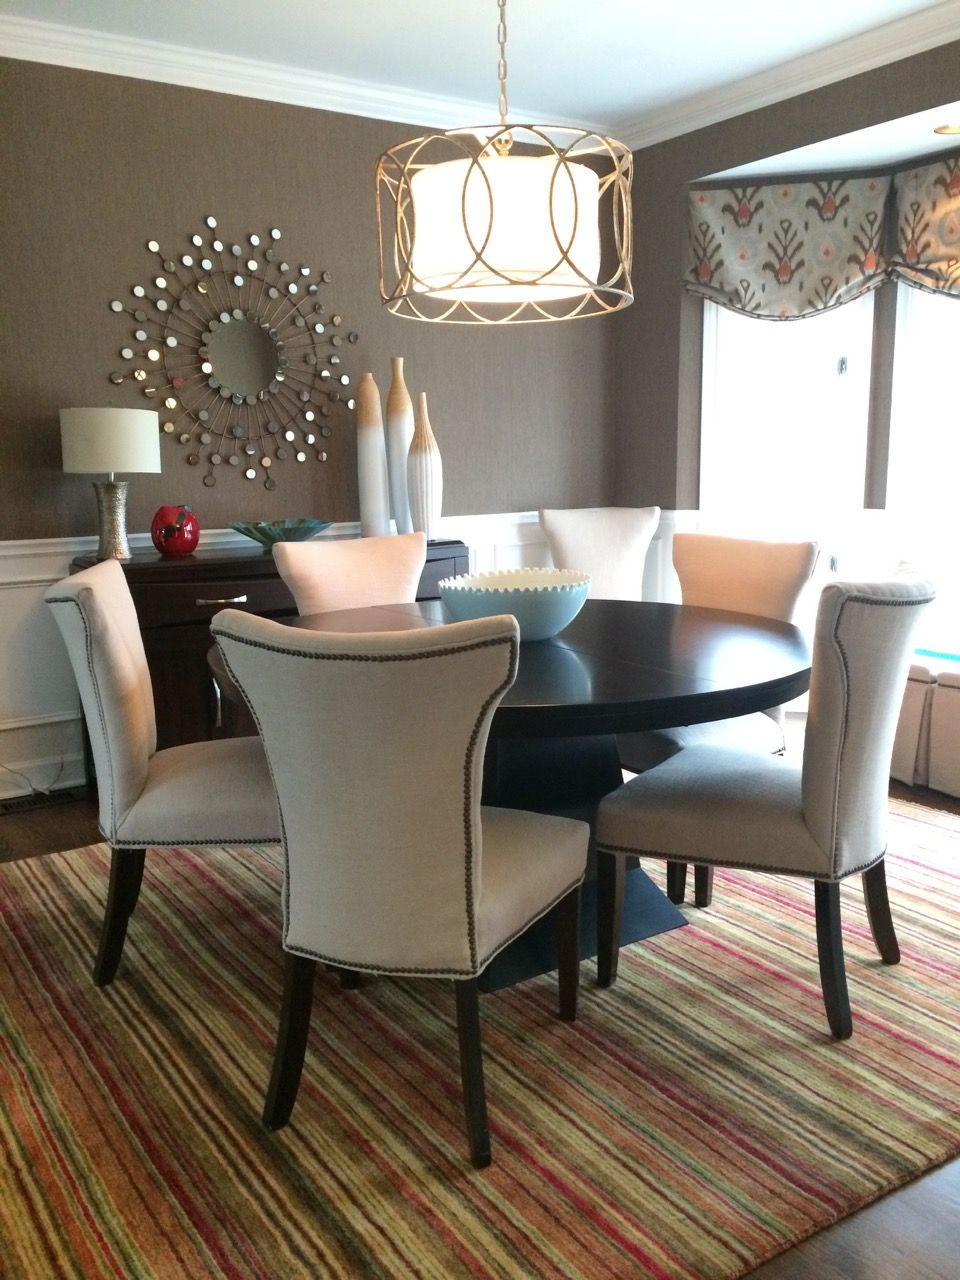 Break Up A Square Dining Room By Adding Round Elements And Furnishings Mock Roman Ikat